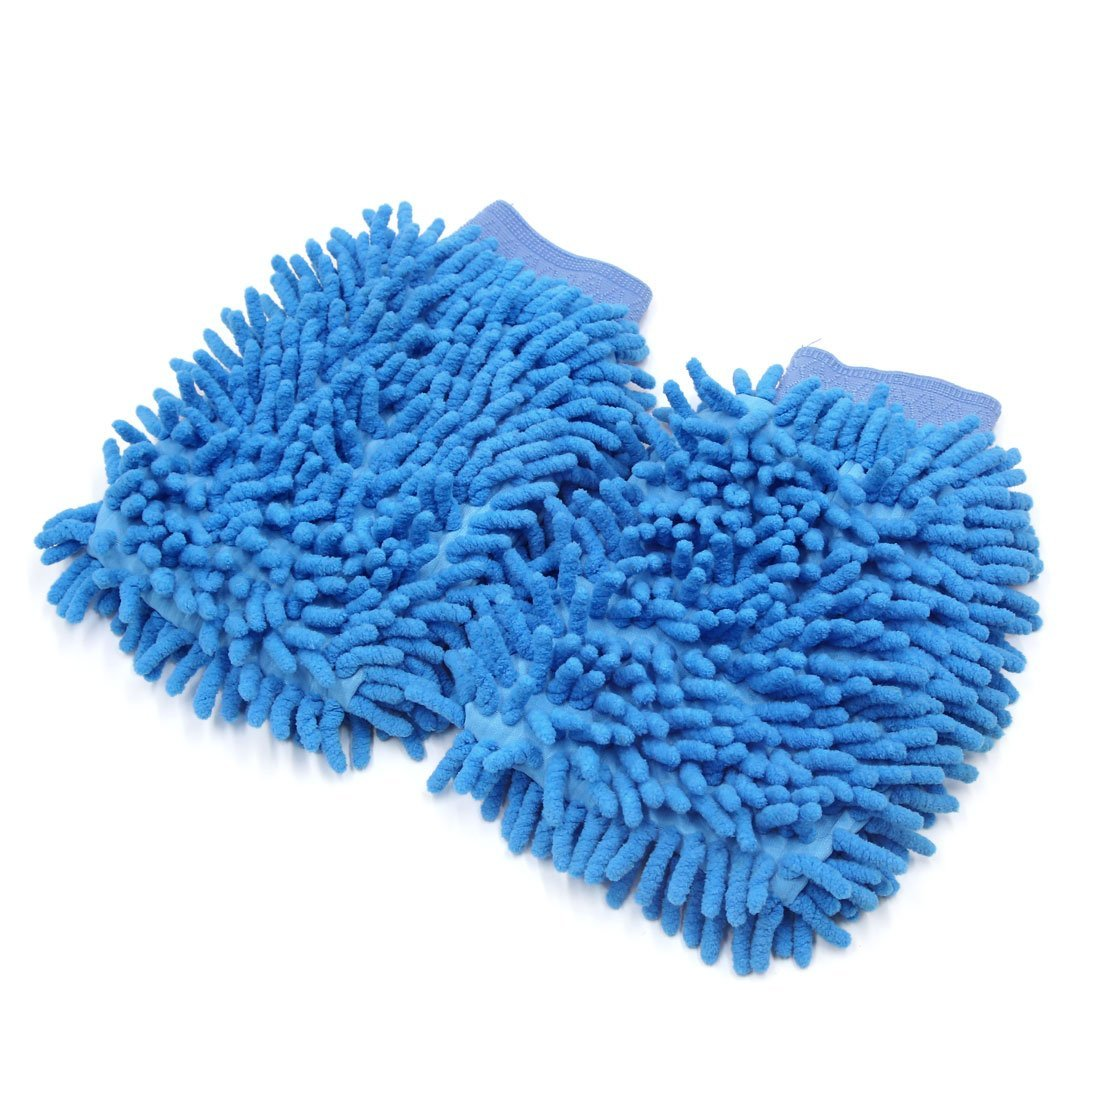 uxcell 2pcs Universal Blue Chenille Washing Cleaning Gloves Mitten for Home Car Vehicle